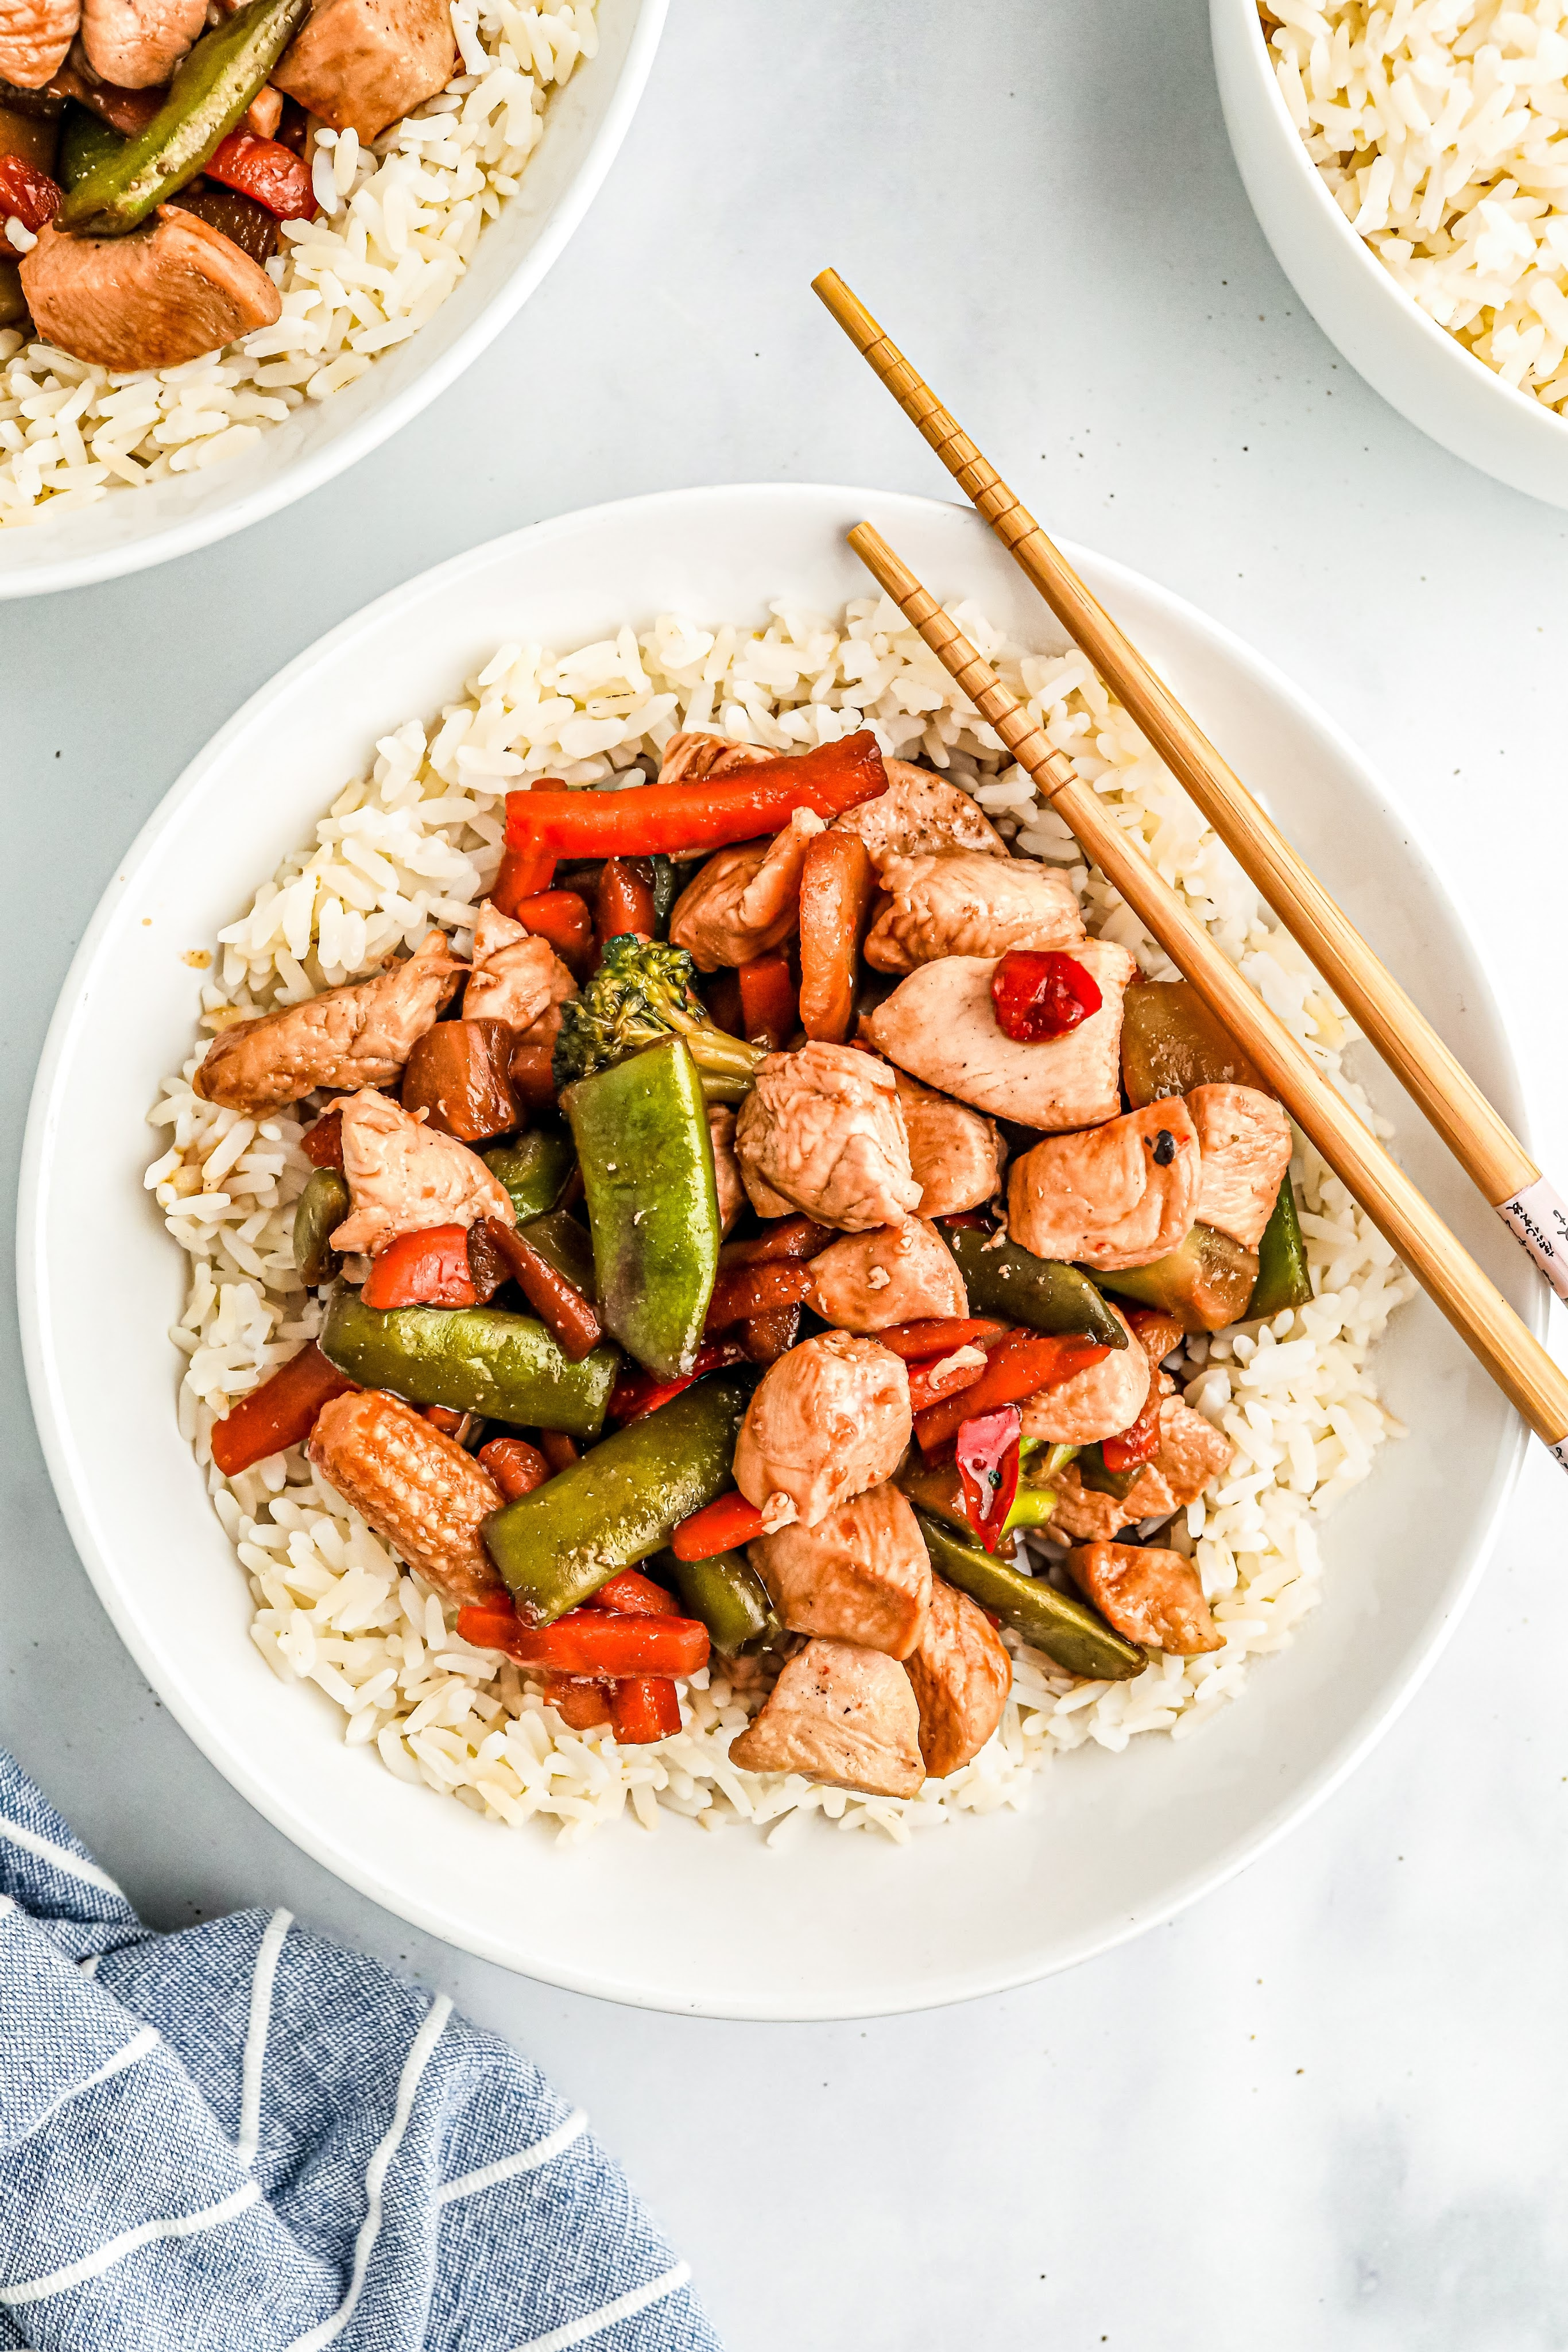 Chicken stir-fry over rice in a white bowl with chop sticks resting on edge of the bowl.